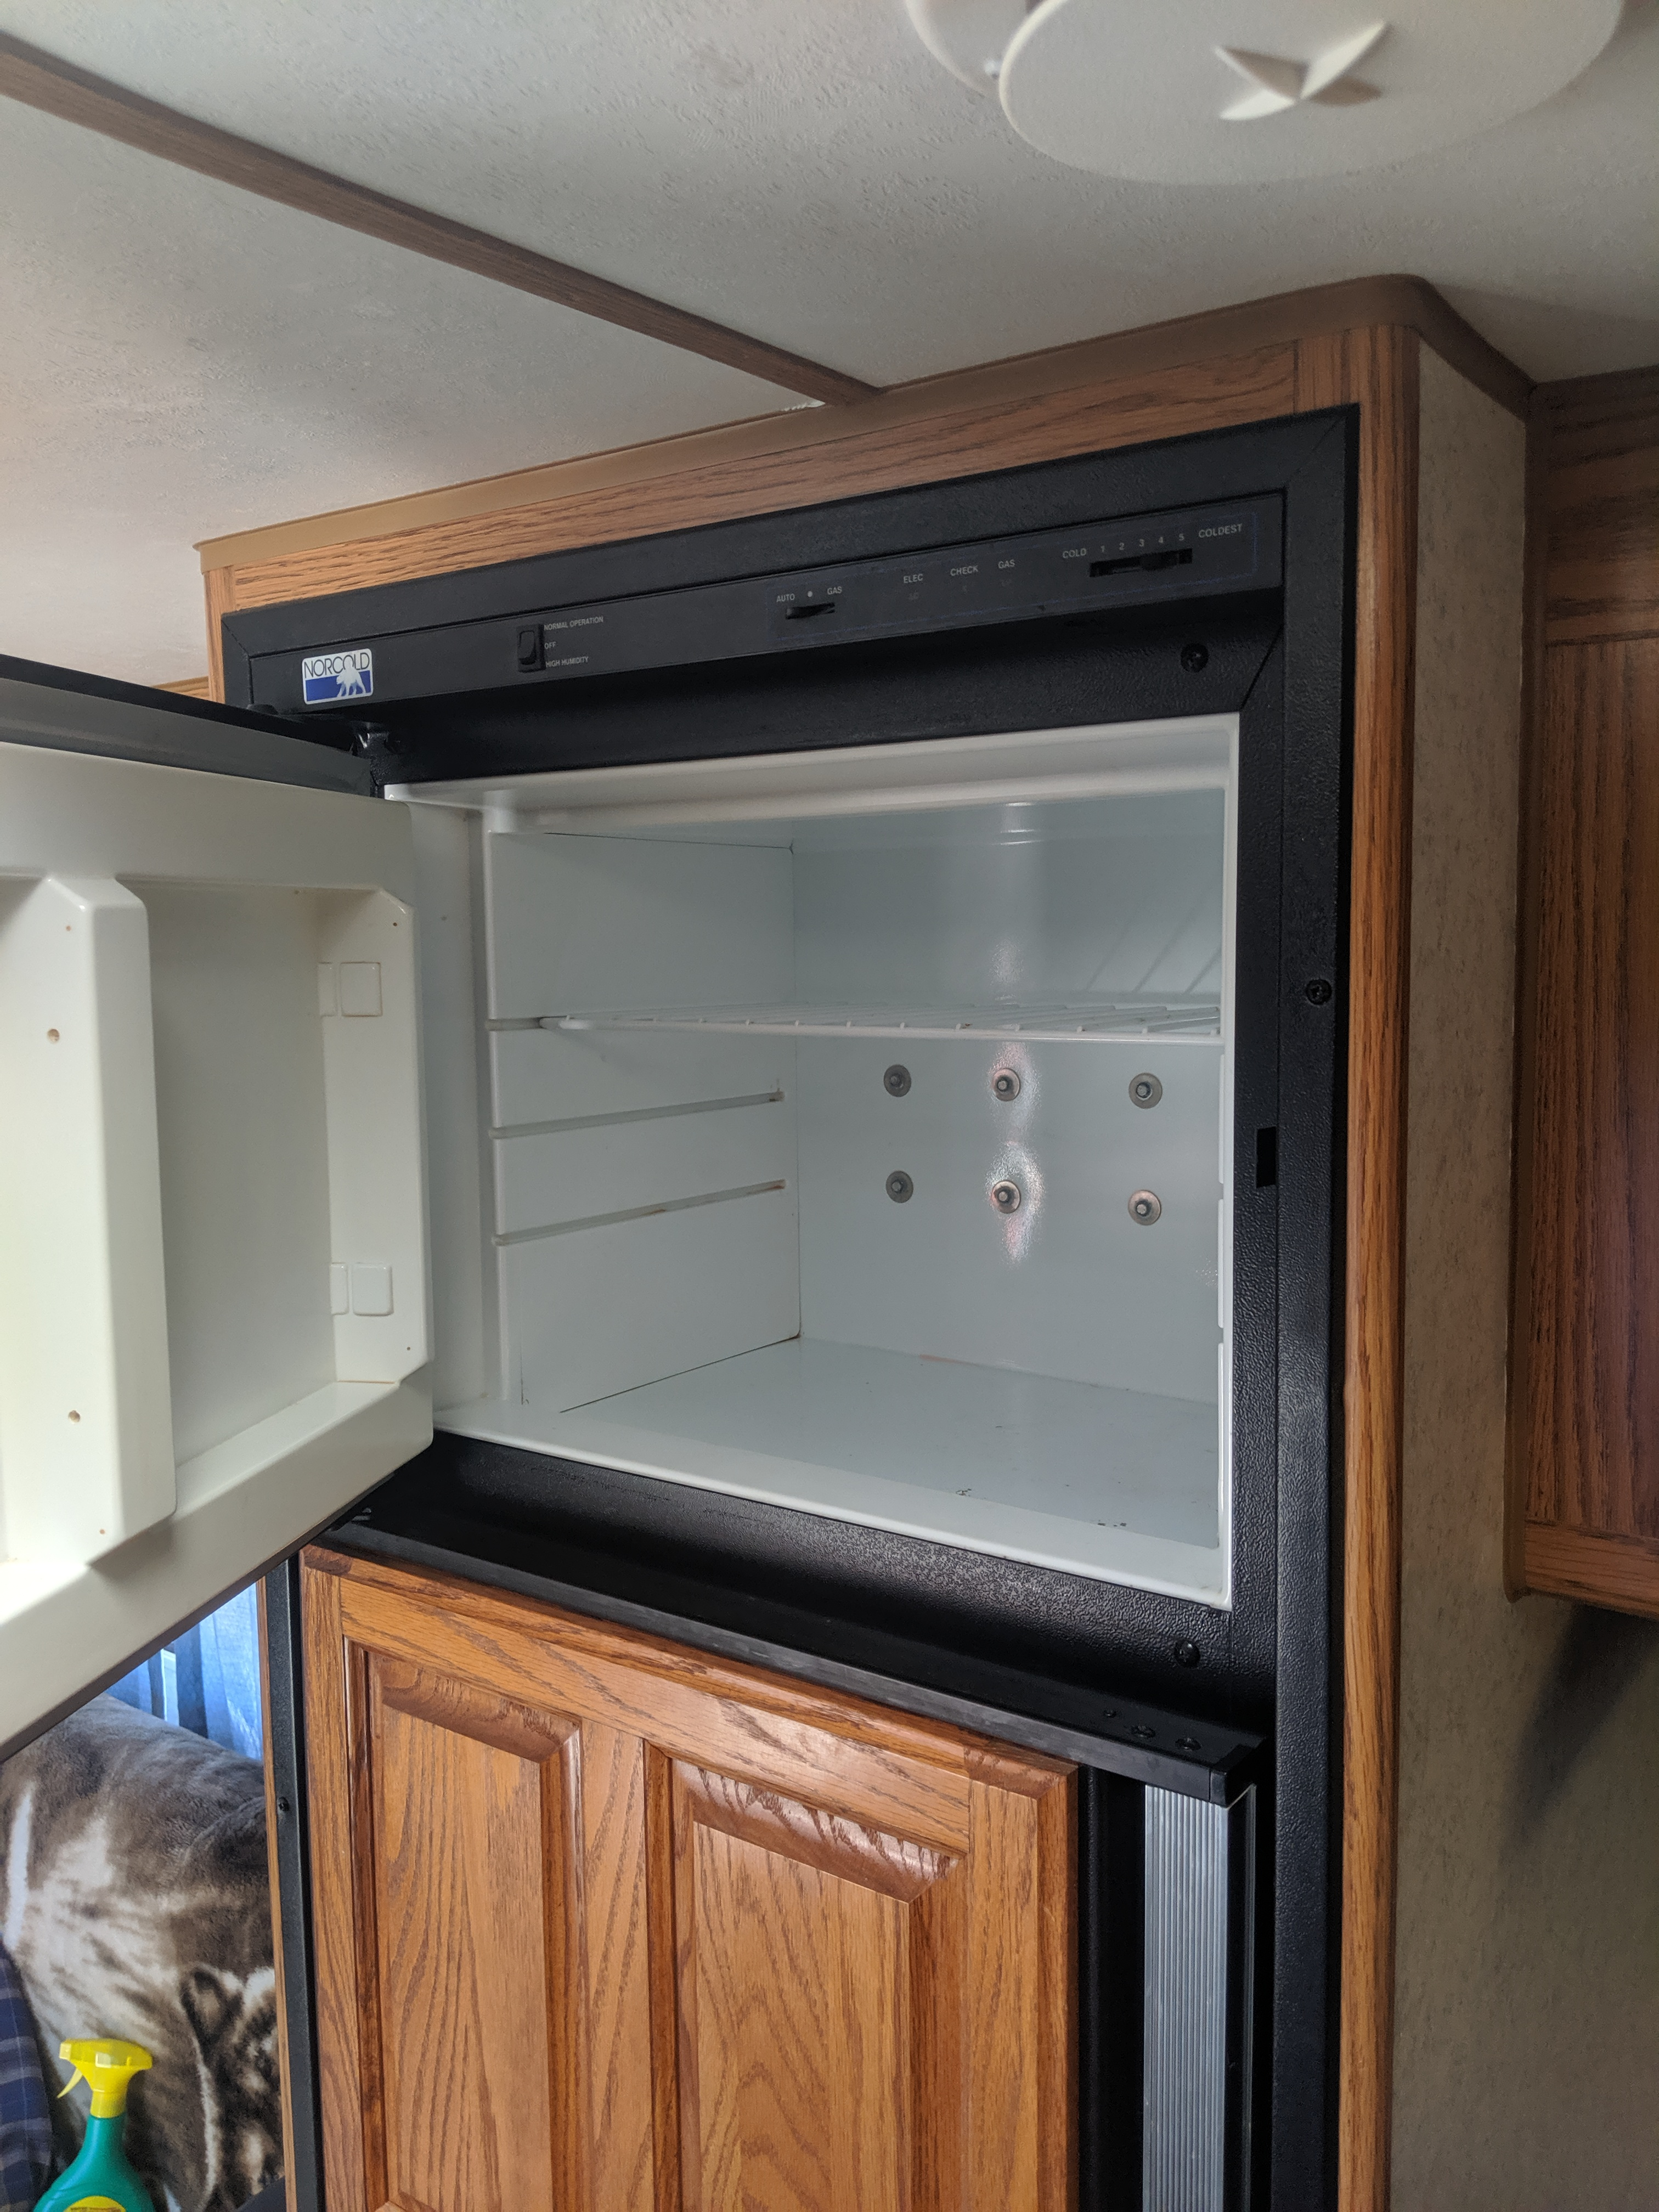 Top freezer. This unit can be operated electrical or propane. . Jayco EAGLE 1997